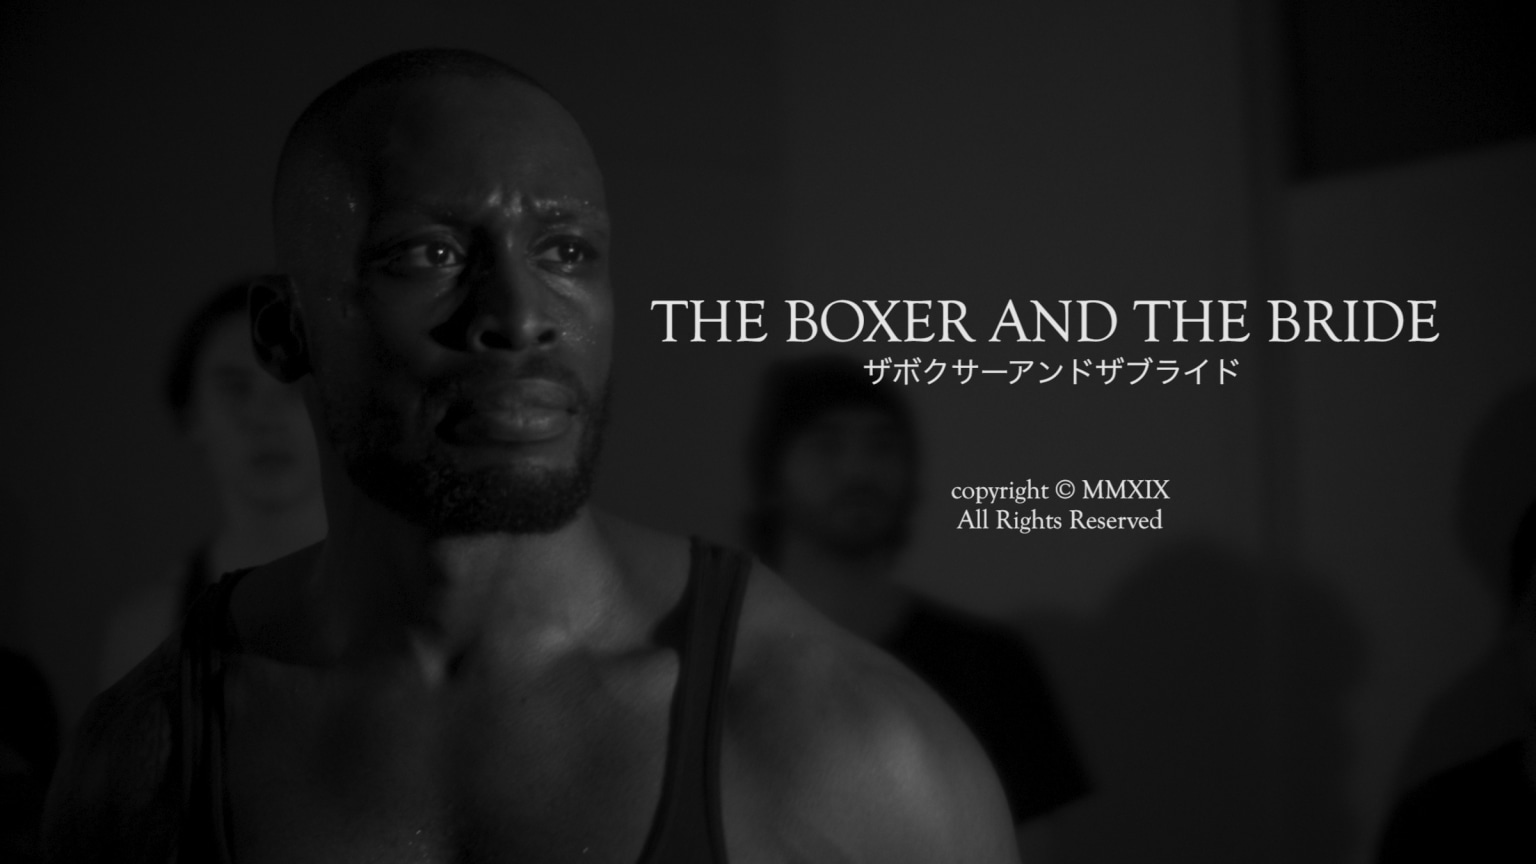 The Boxer and The Bride